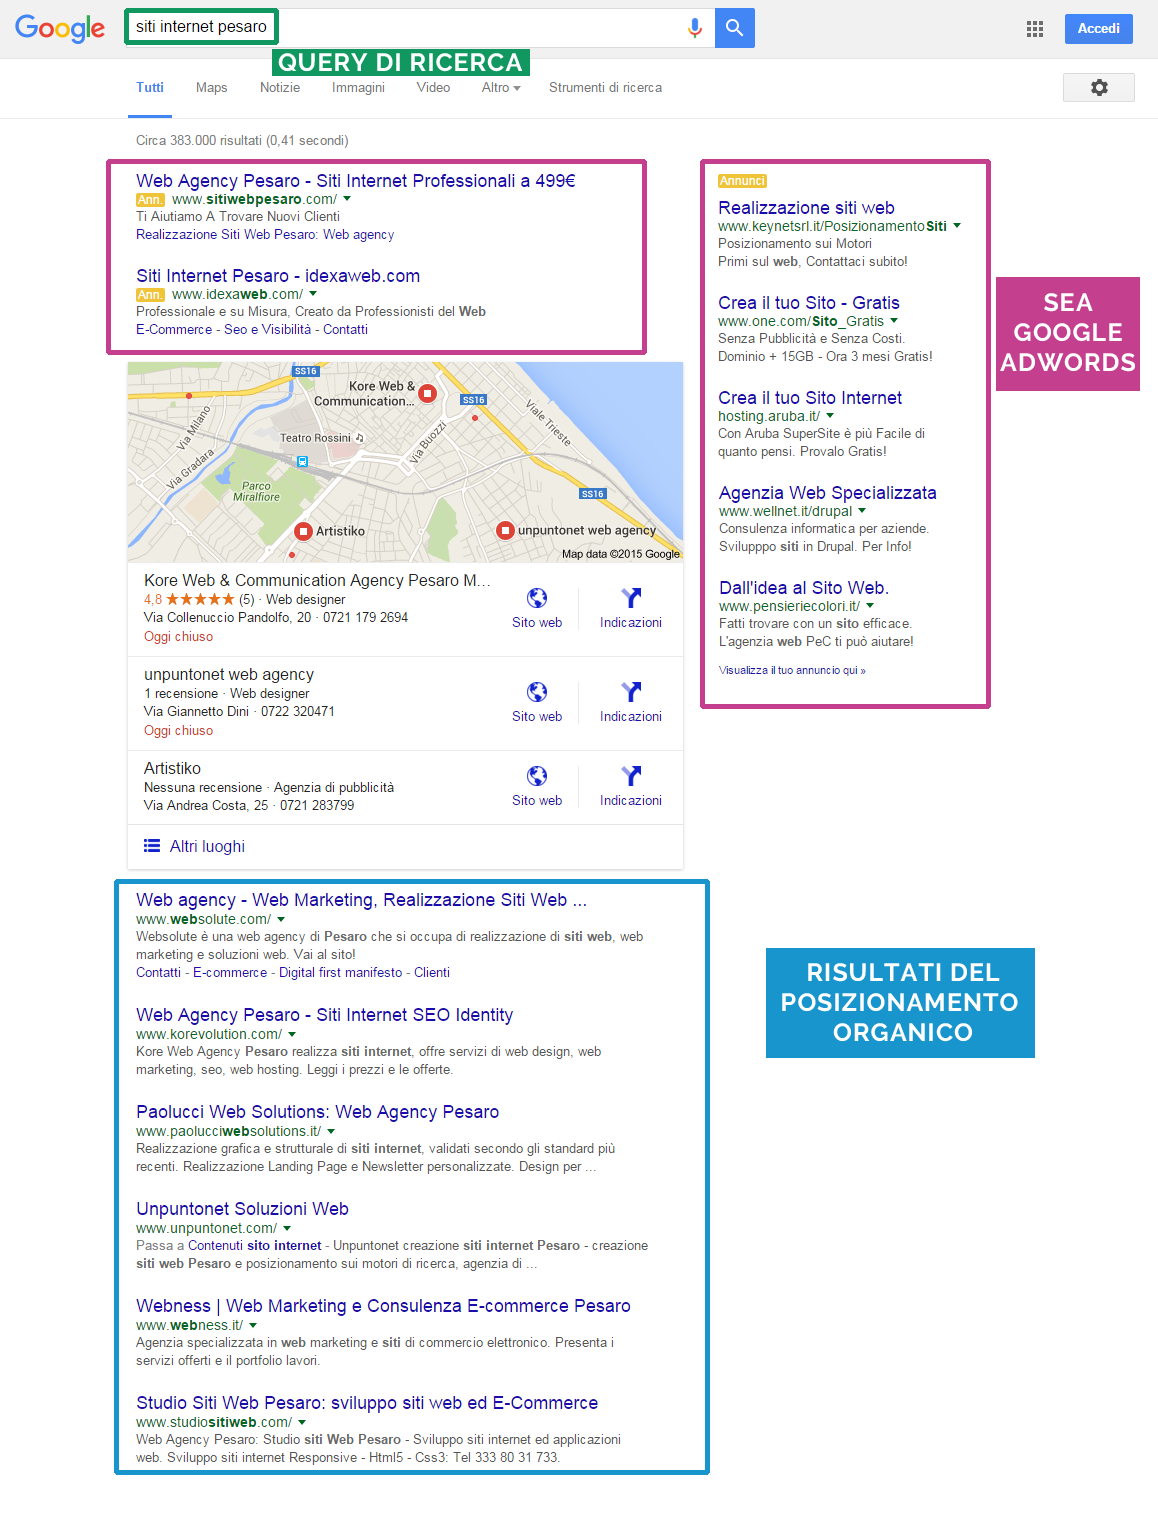 differenze sea google adwords e posizionamento organico